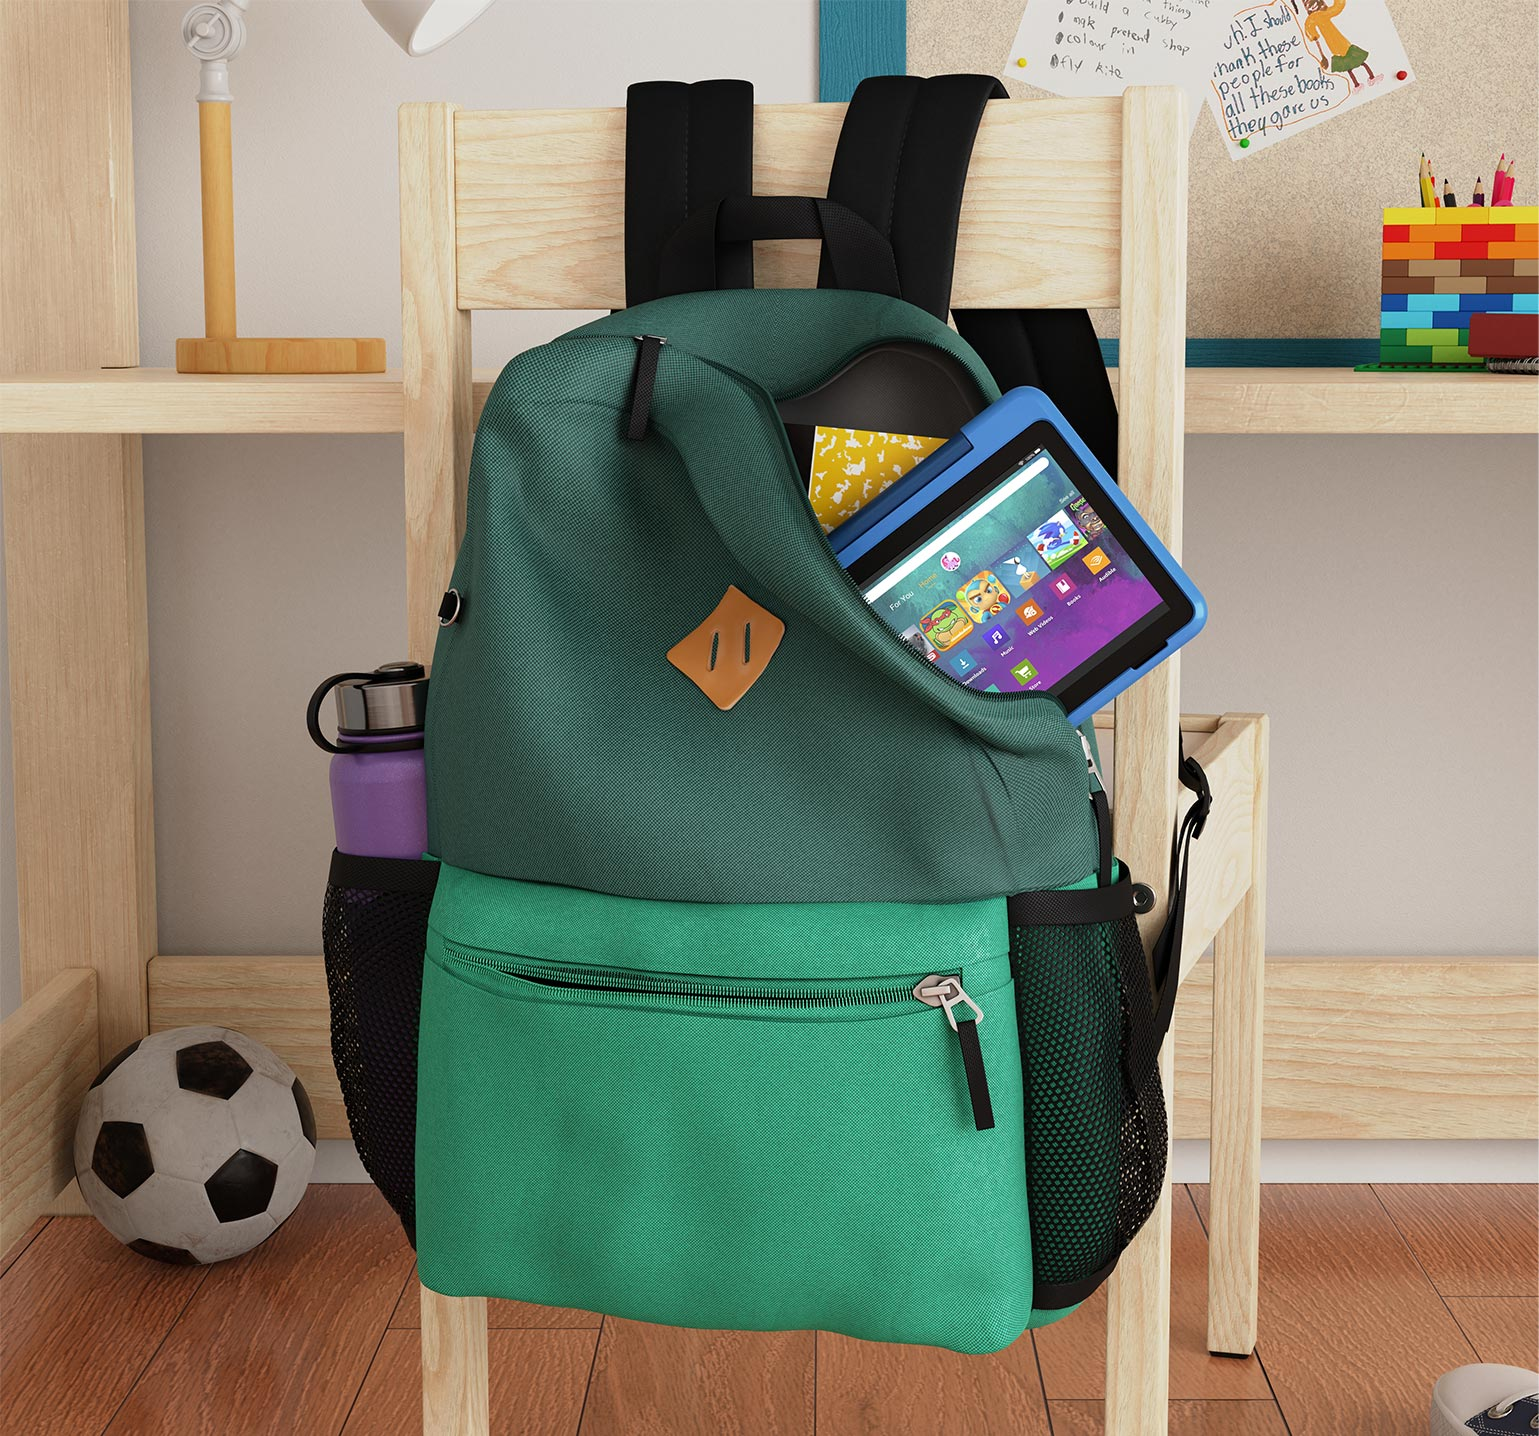 Fire HD 8 Kids Pro tablet about to fall out of child's backpack hanging off back of chair.